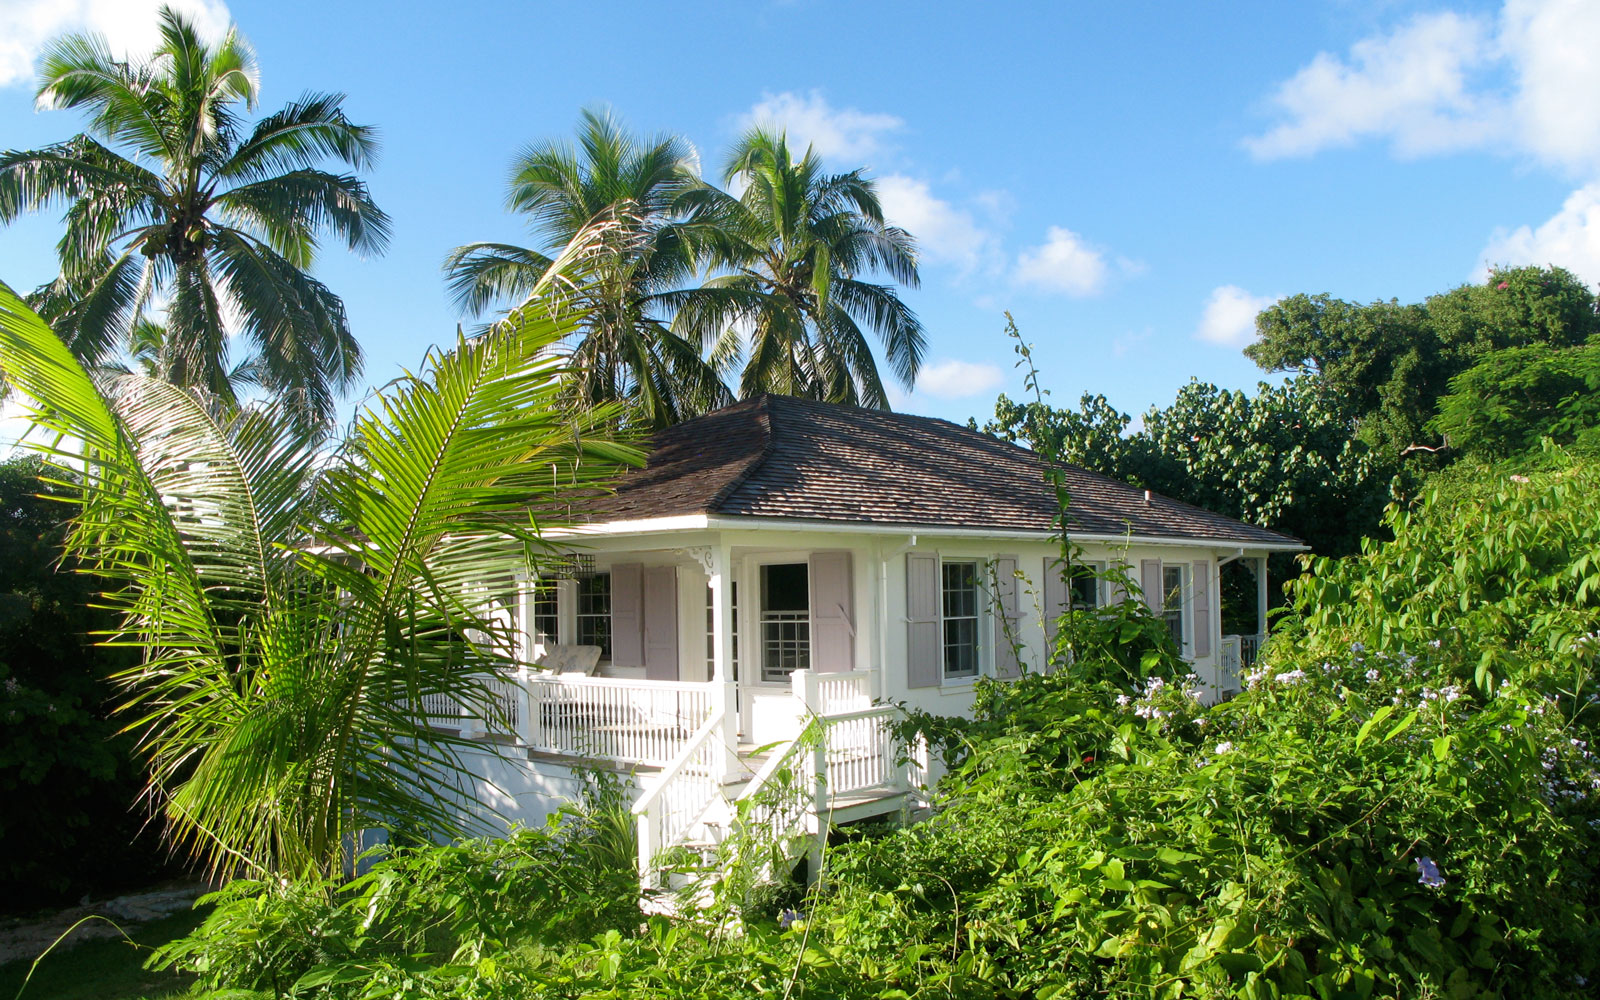 home-in-bahamas-HISTORIC317.jpg